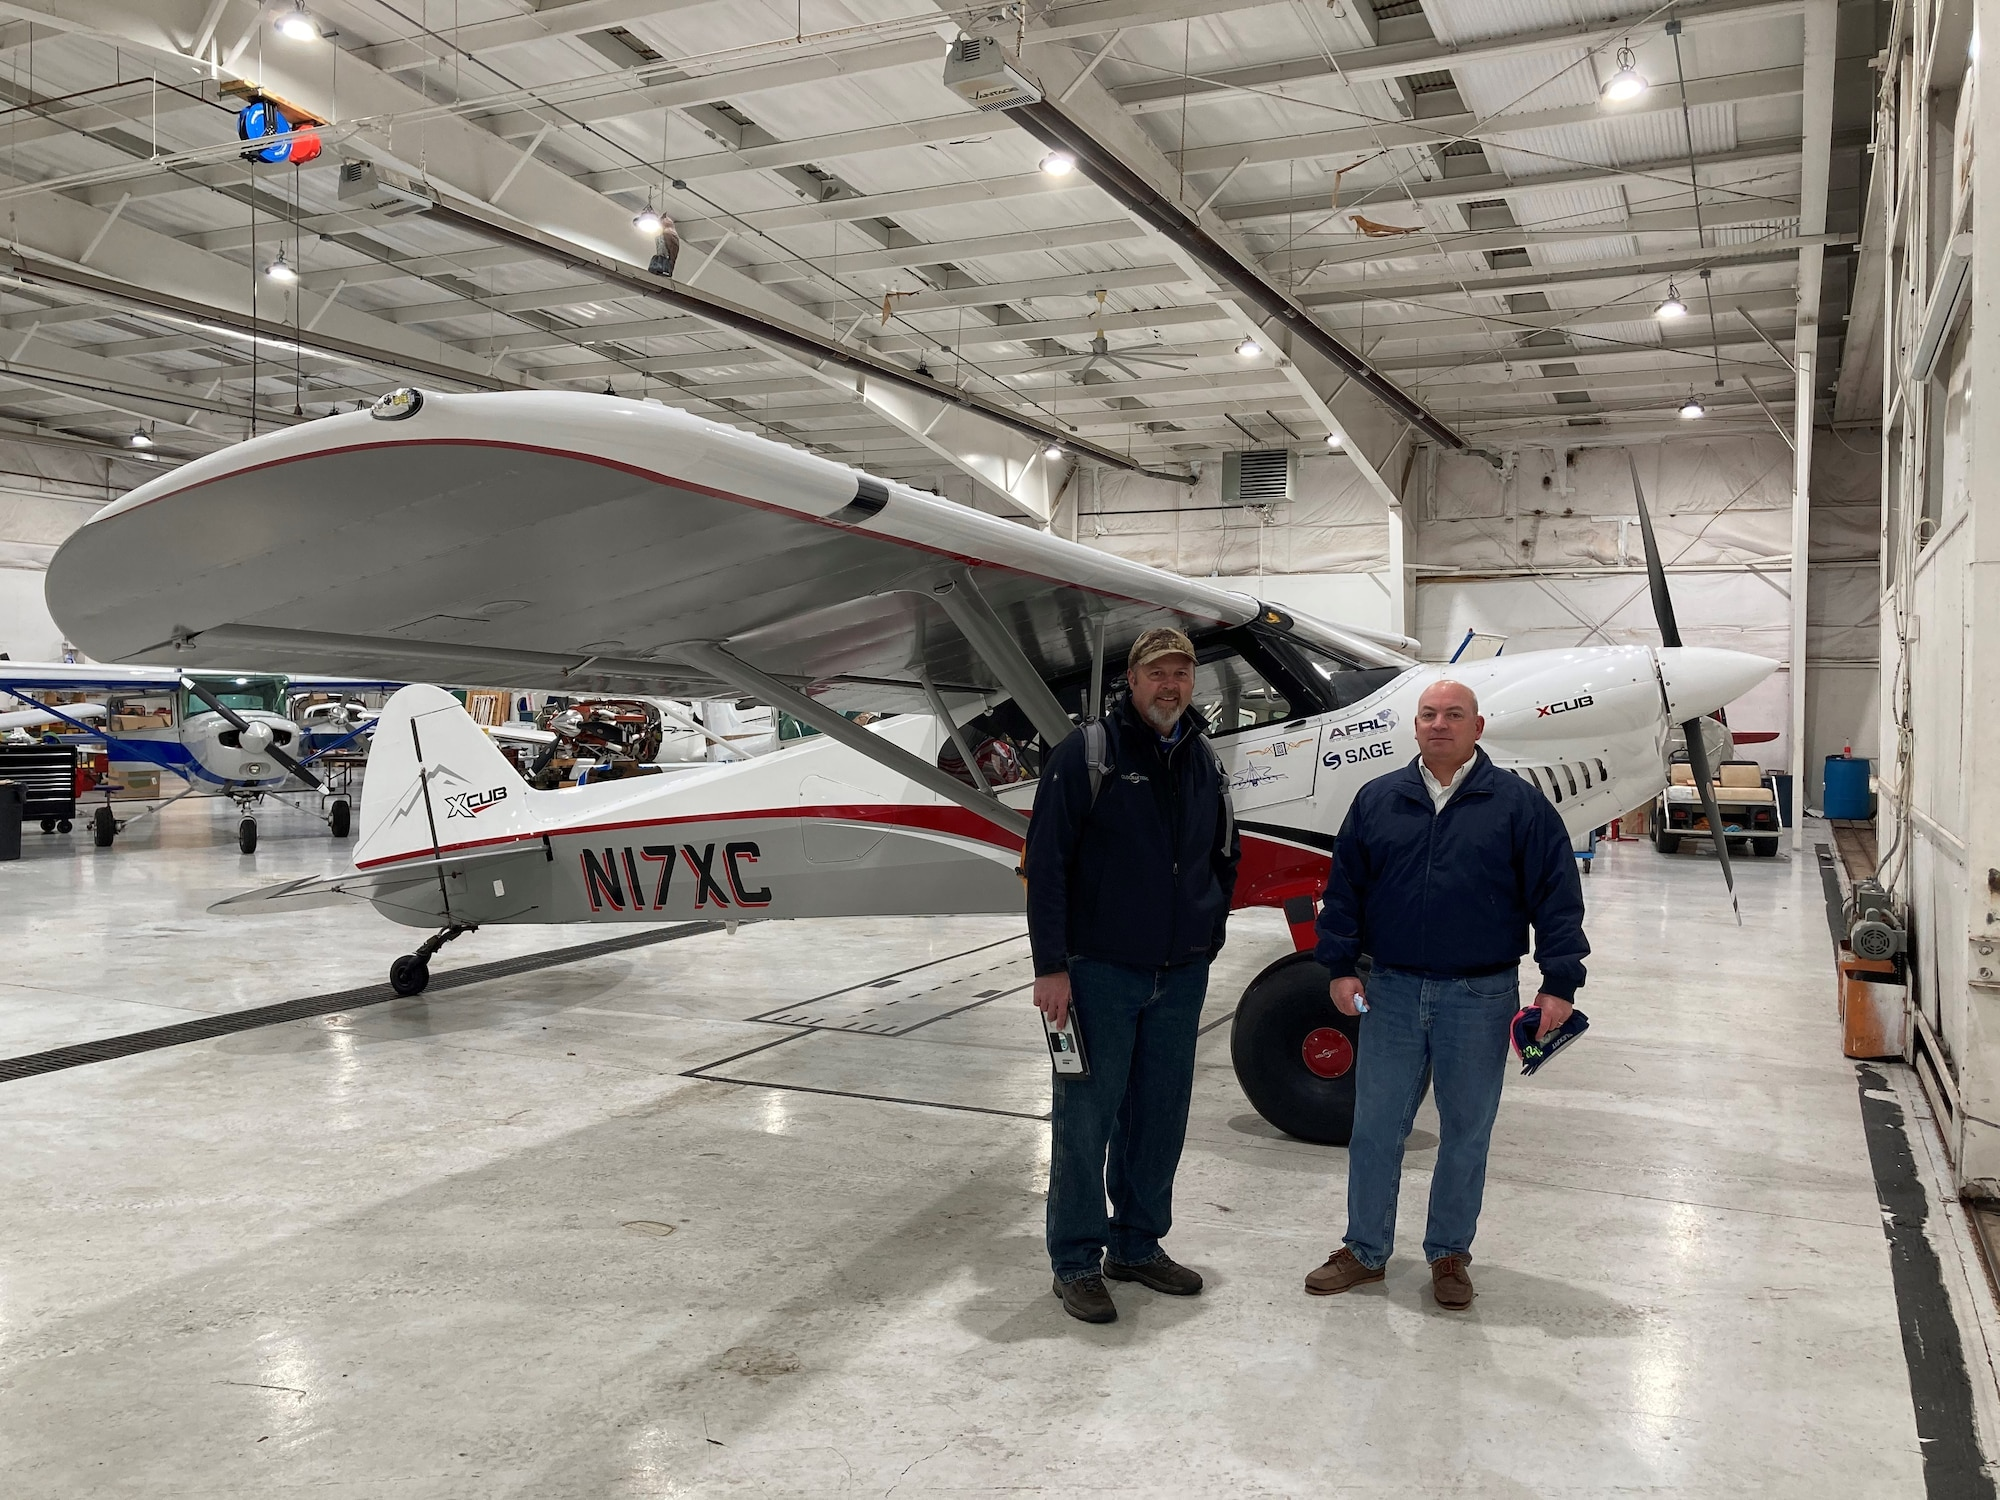 """CubCrafters pilot Mark Keneston (left) and Air Force Research Laboratory pilot Dr. Eric Geiselman are pictured next to AFRL LASH Lysander XCub at the Lewis A. Jackson Regional Airport in Greene County, Ohio, on Dec. 21, 2020. The aircraft made a brief stop before traveling on to the AFRL 711th Human Performance Wing's contracted research flight test organization facility in Maryland, where it will be used to advance the initial """"Lysander"""" personnel recovery flight experiments. (U.S. Air Force photo/Dr. Darrel G. Hopper)"""